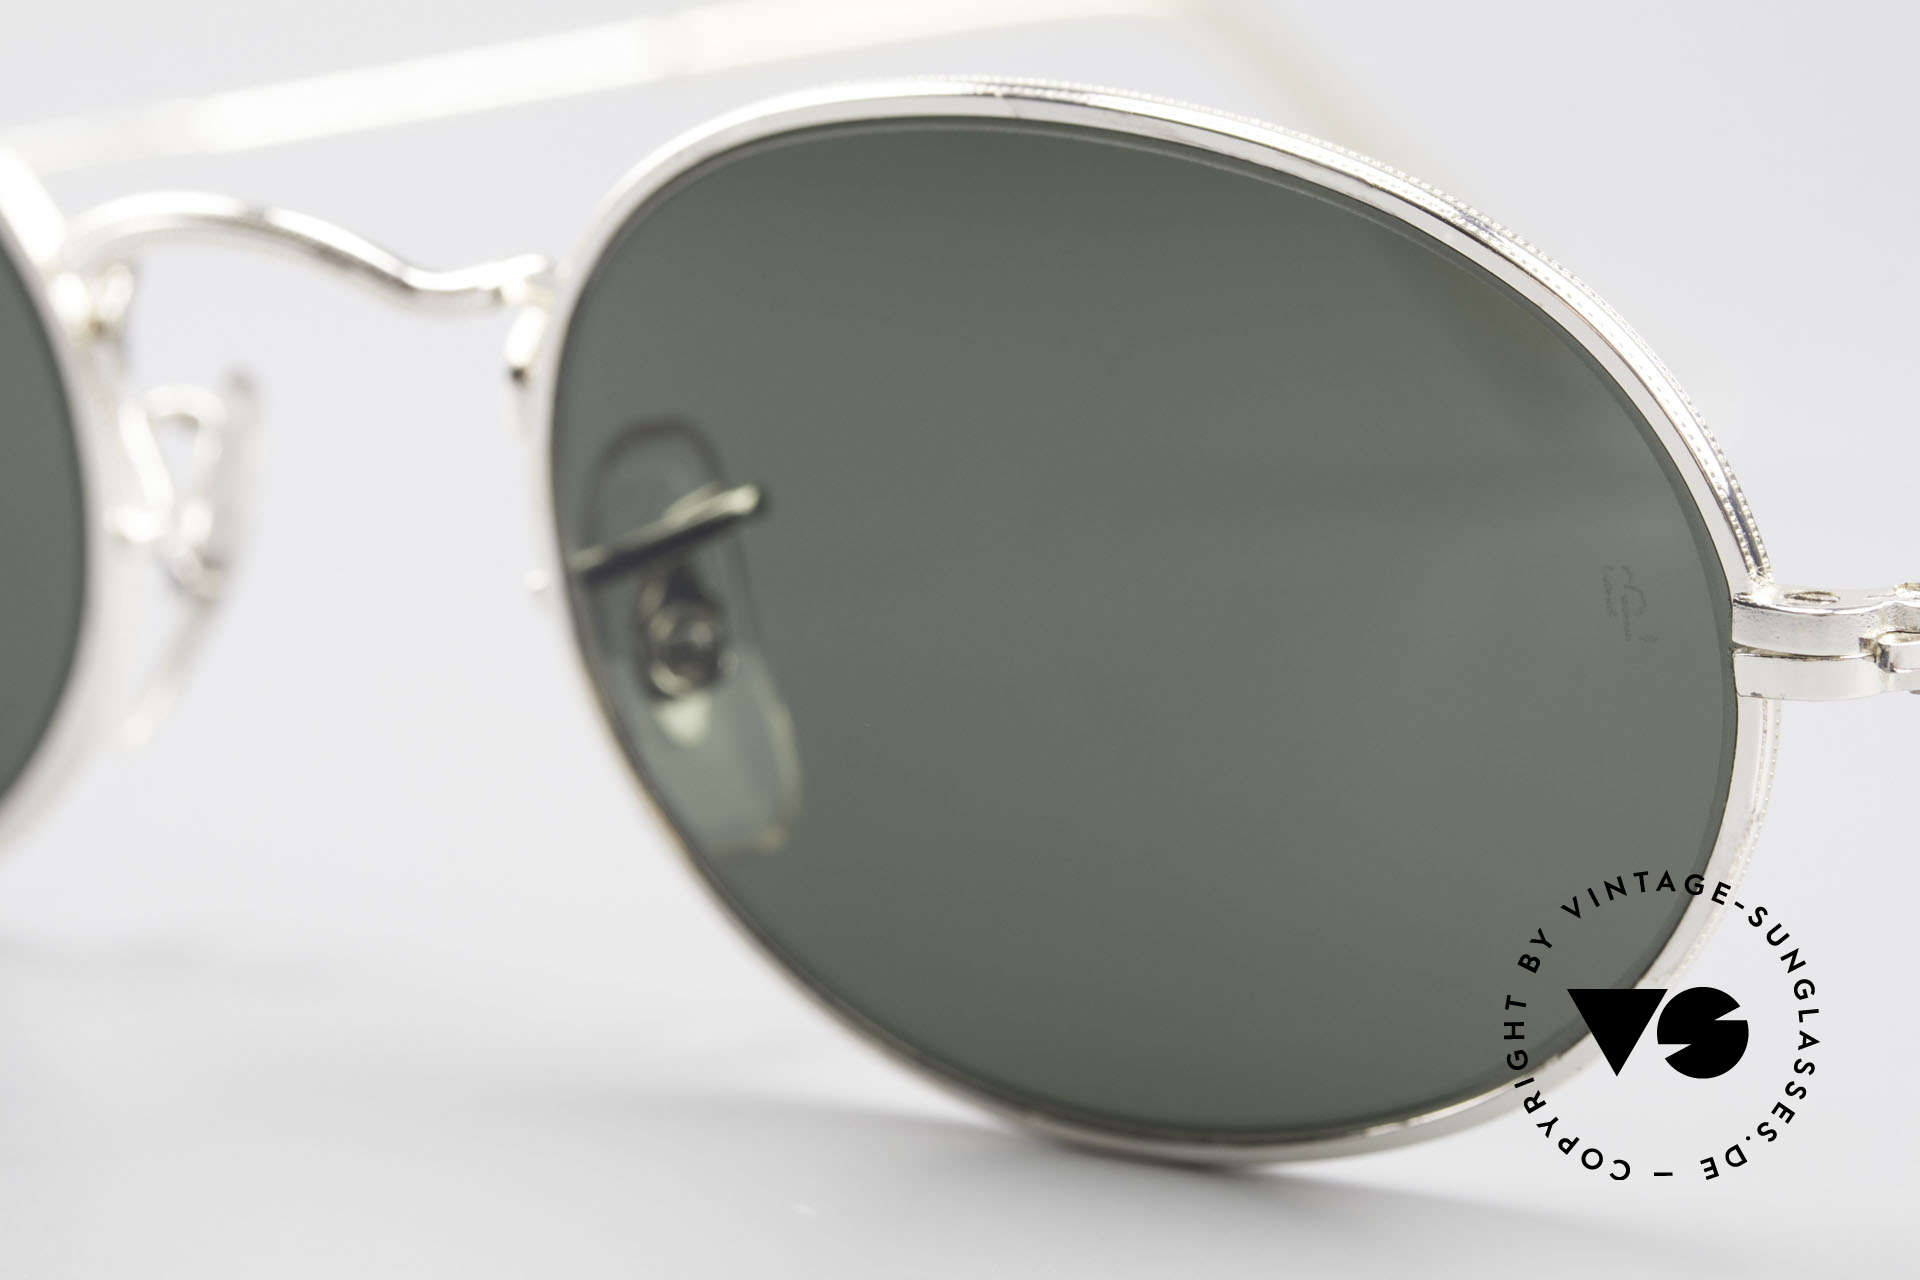 Ray Ban Classic Style I Old Oval B&L USA Sunglasses, Size: small, Made for Men and Women